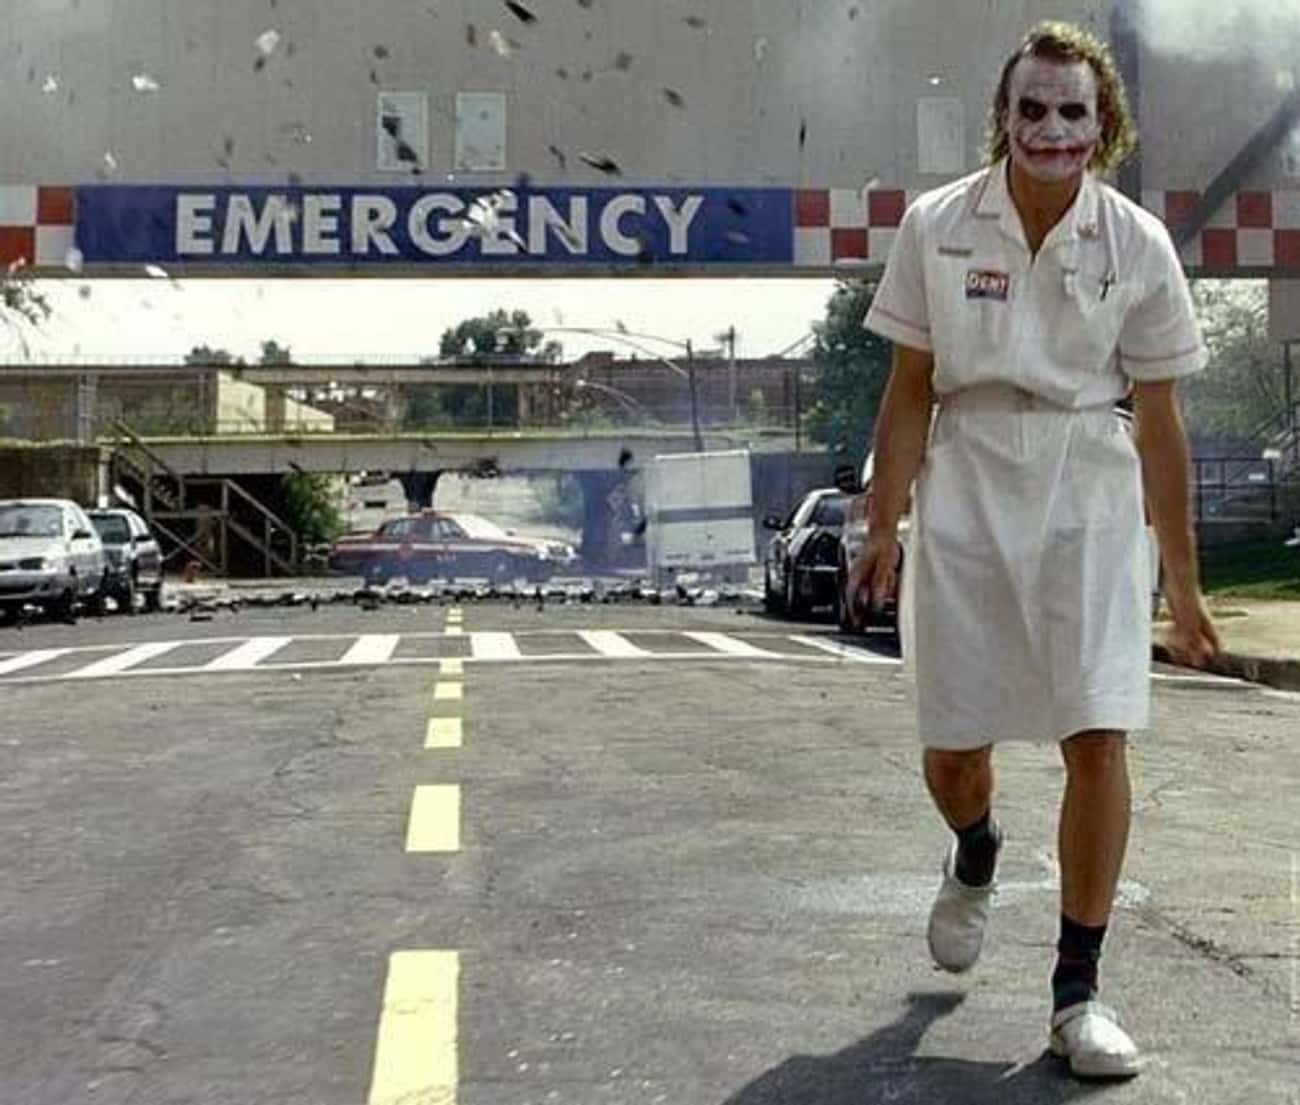 When The Joker Blows Up A Hospital In 'The Dark Knight'